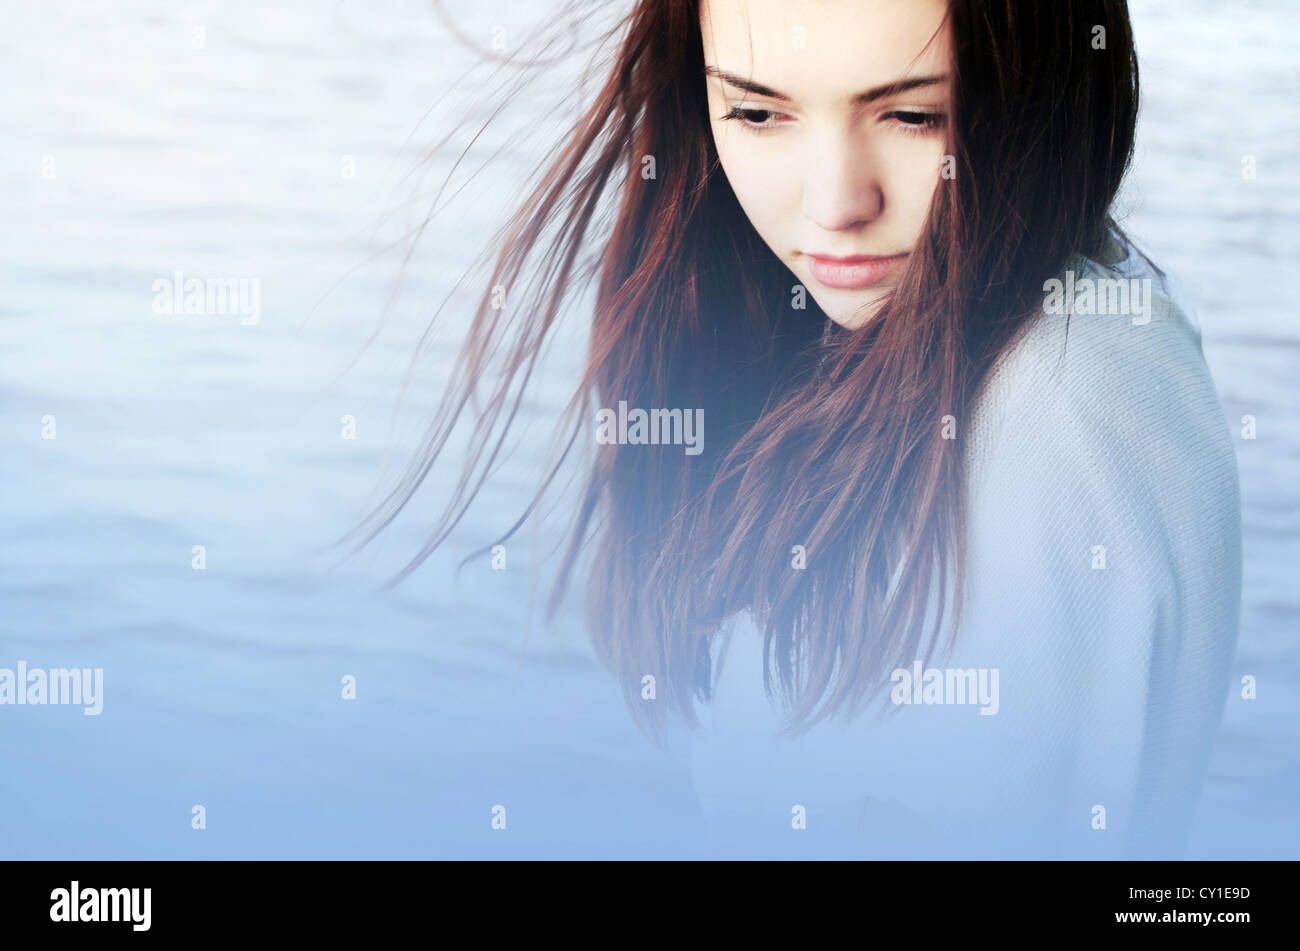 Close up of young woman with long red hair looking down beside water - Stock Image